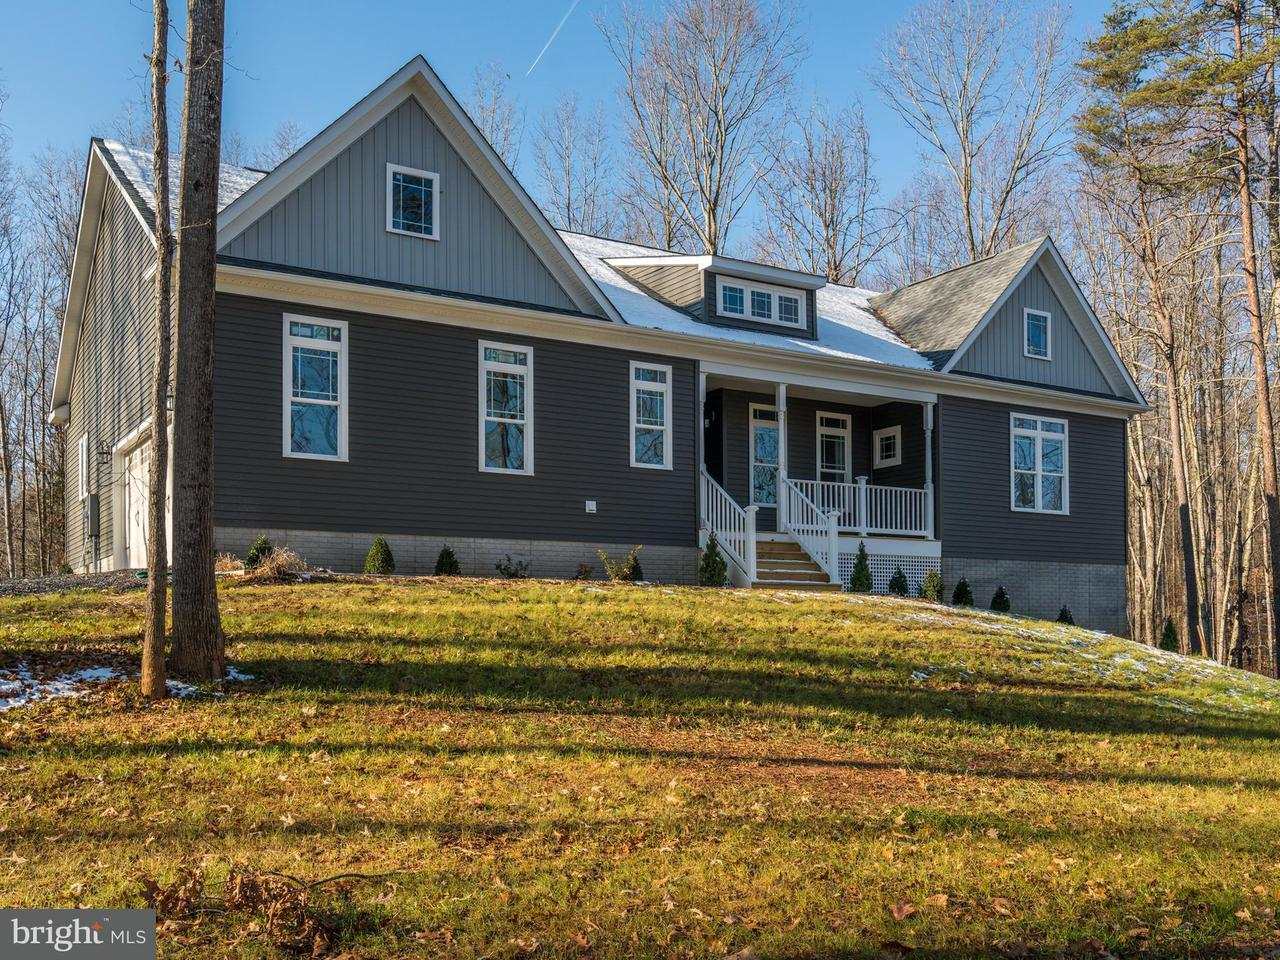 Single Family Home for Sale at 11474 DUTCH HOLLOW Road 11474 DUTCH HOLLOW Road Culpeper, Virginia 22701 United States